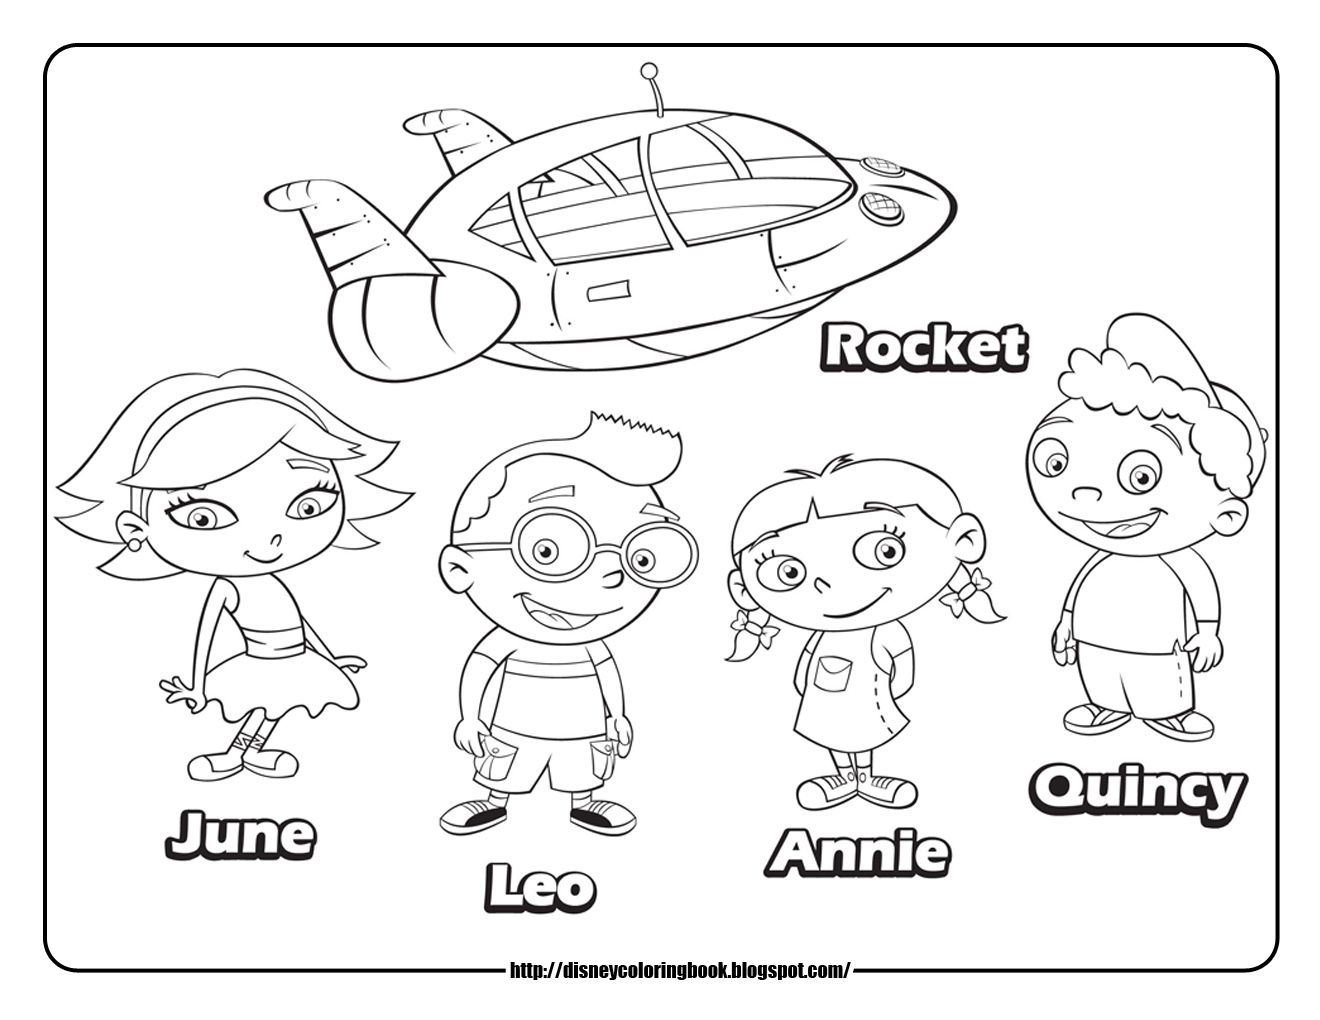 Little Einsteins 4 Free Disney Coloring Sheets Little Einsteins